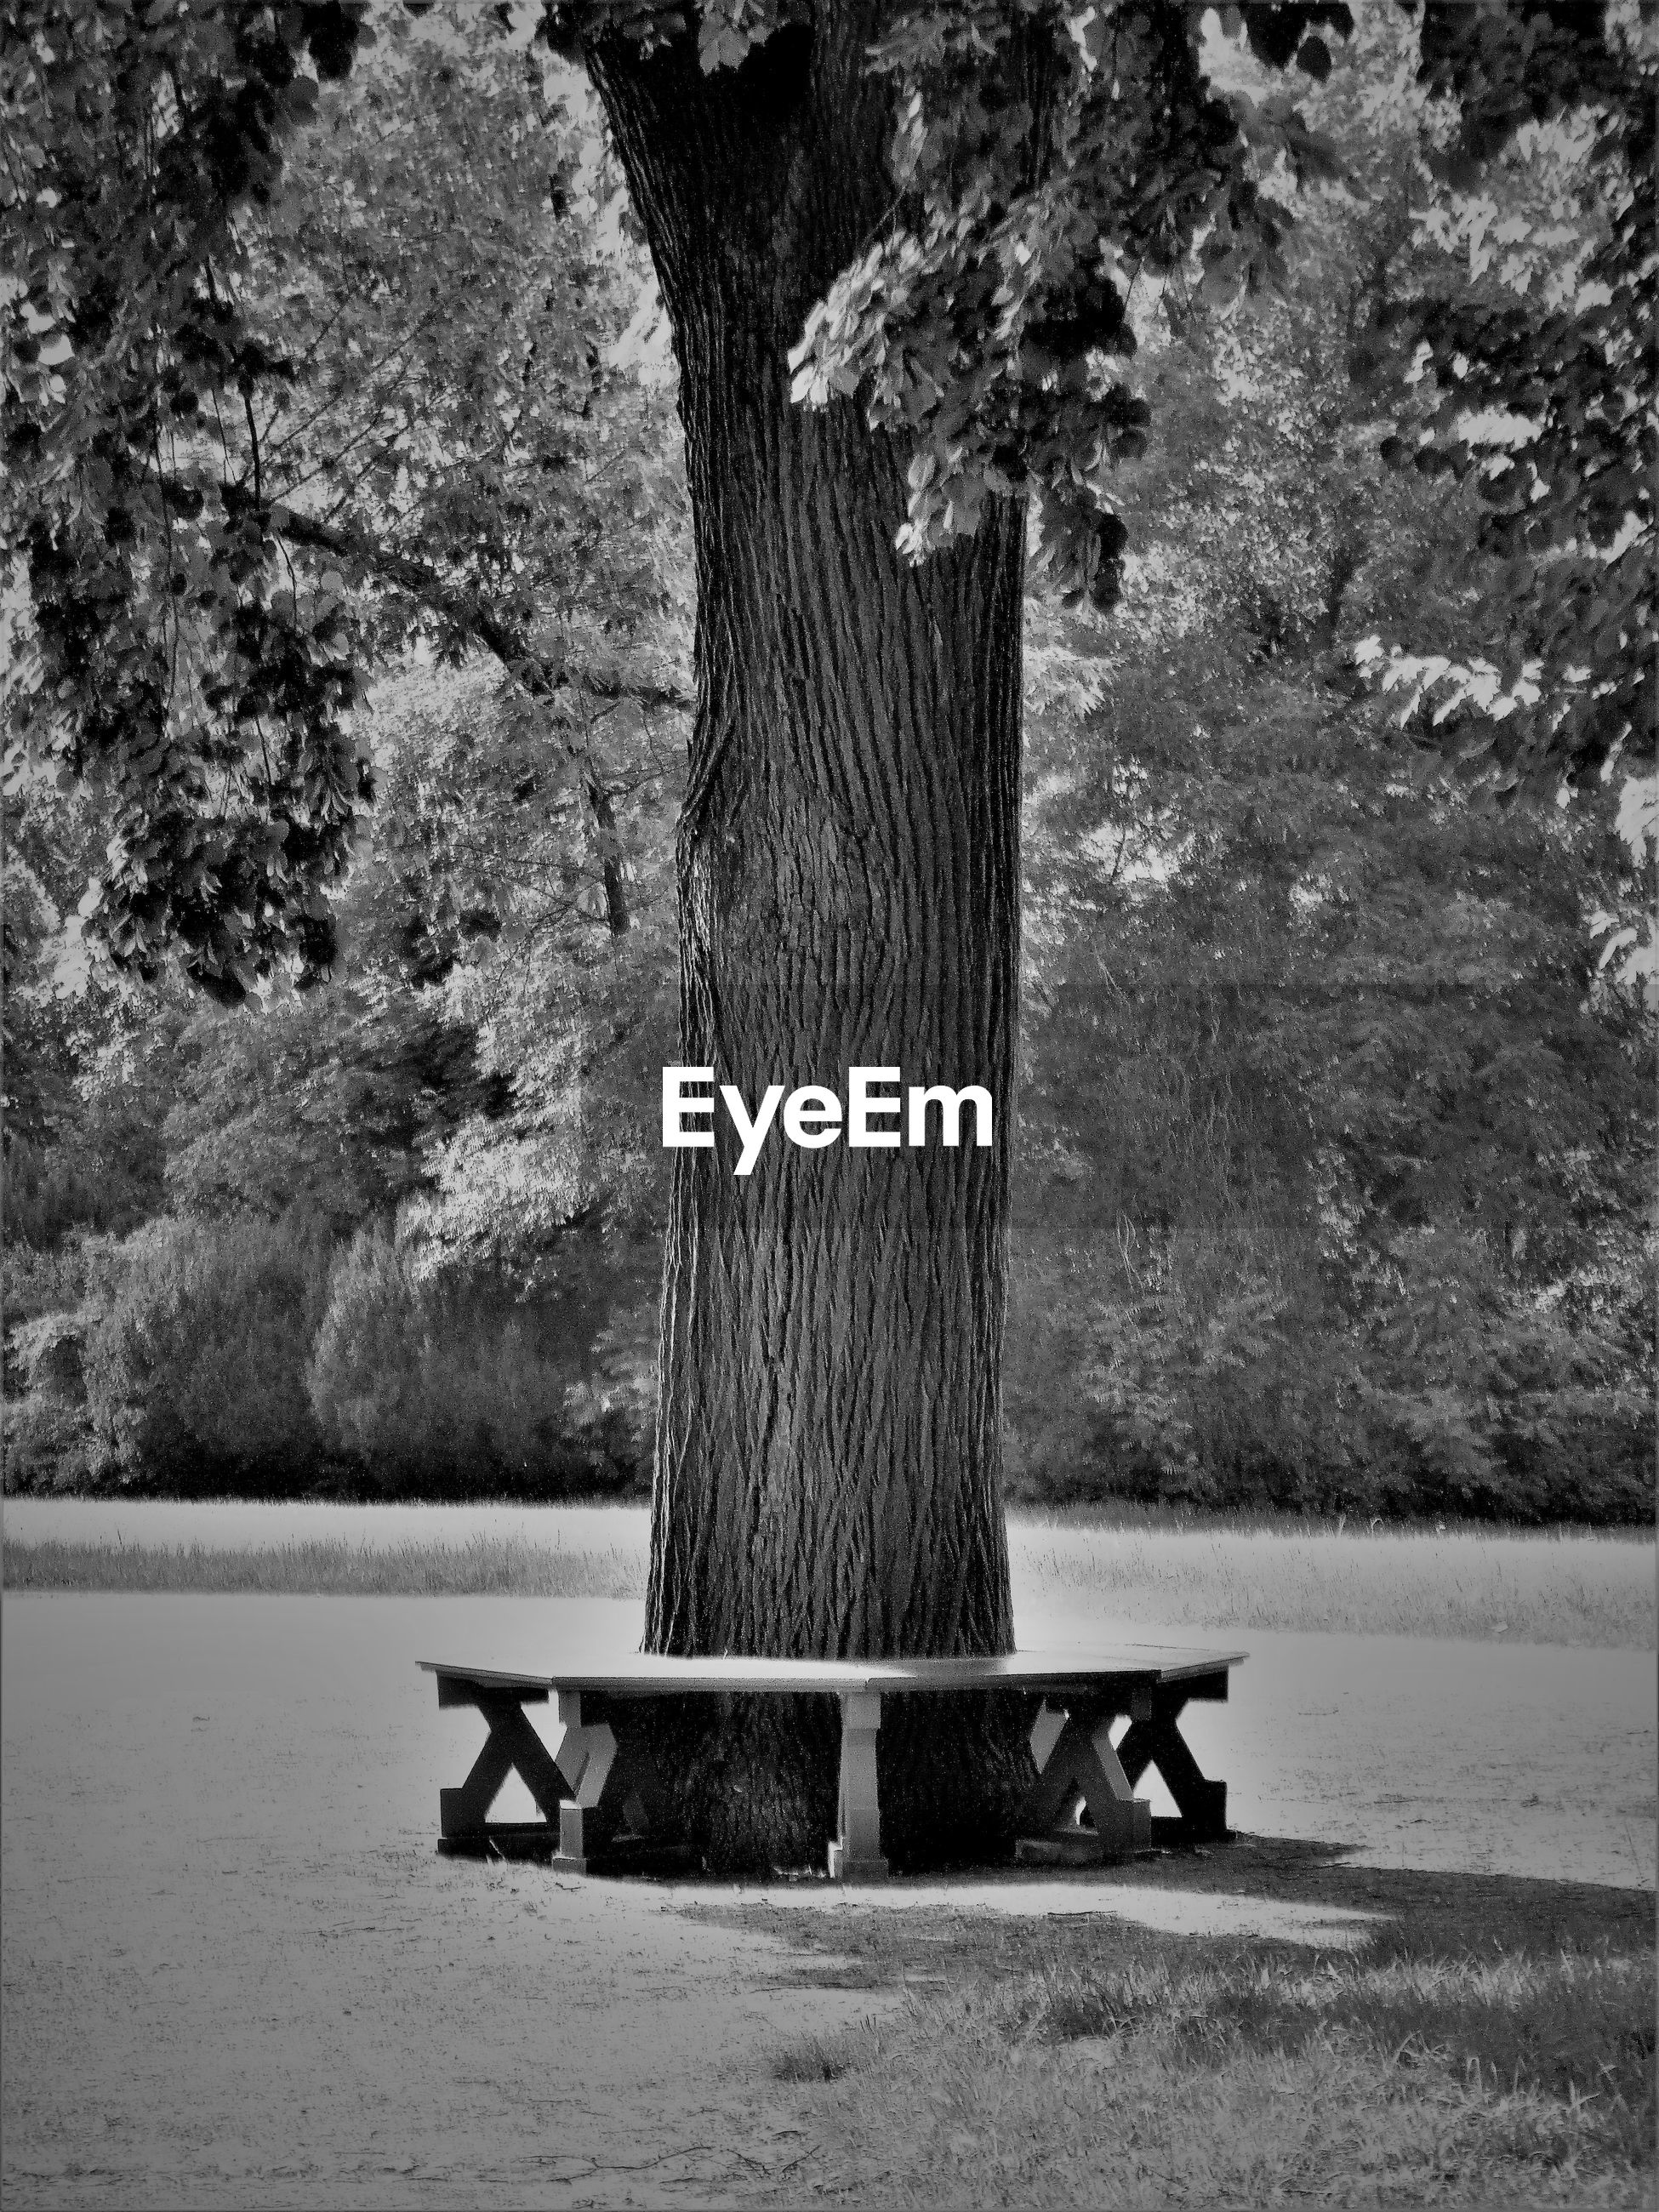 BENCH IN PARK BY LAKE AGAINST TREES